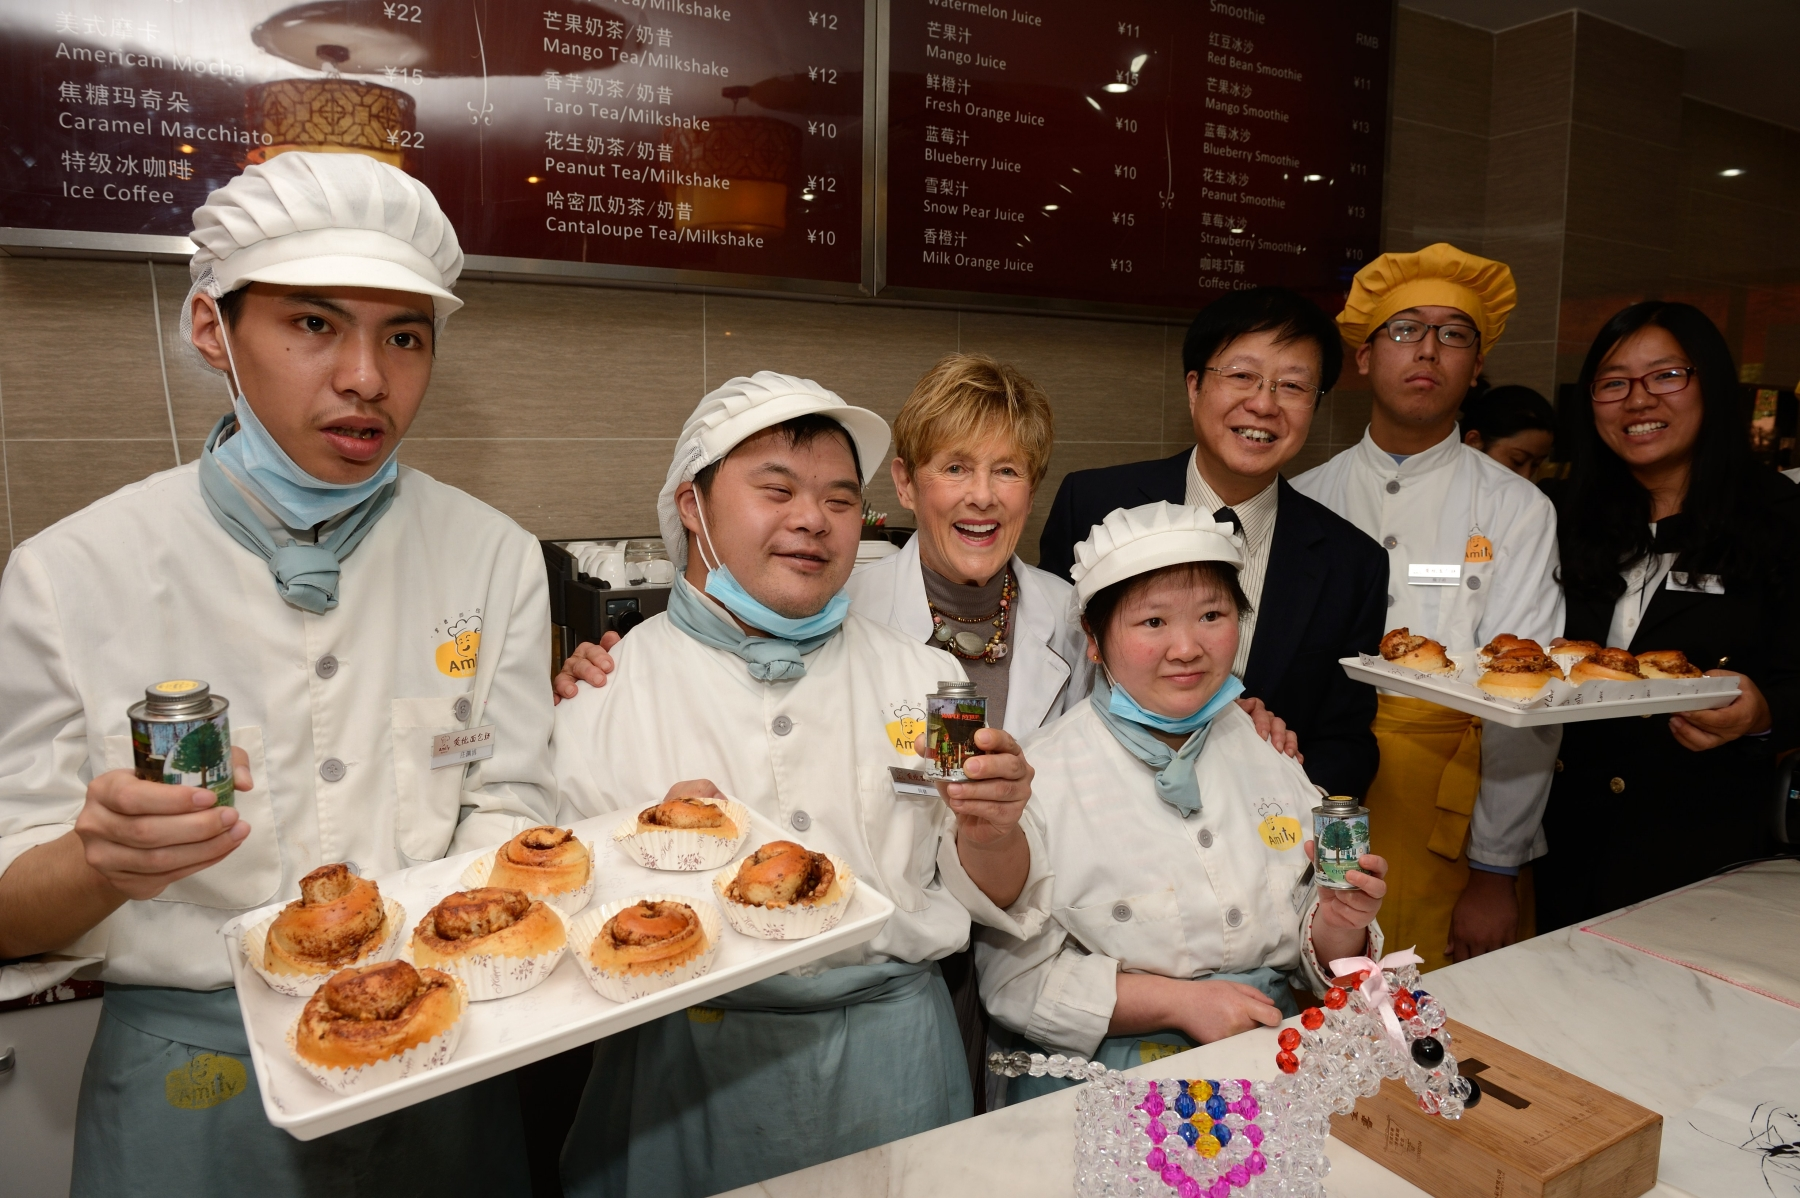 The Amity Bakery is run by the Foundation and is China's first business entity that provides training and job opportunities to people with developmental disabilities.